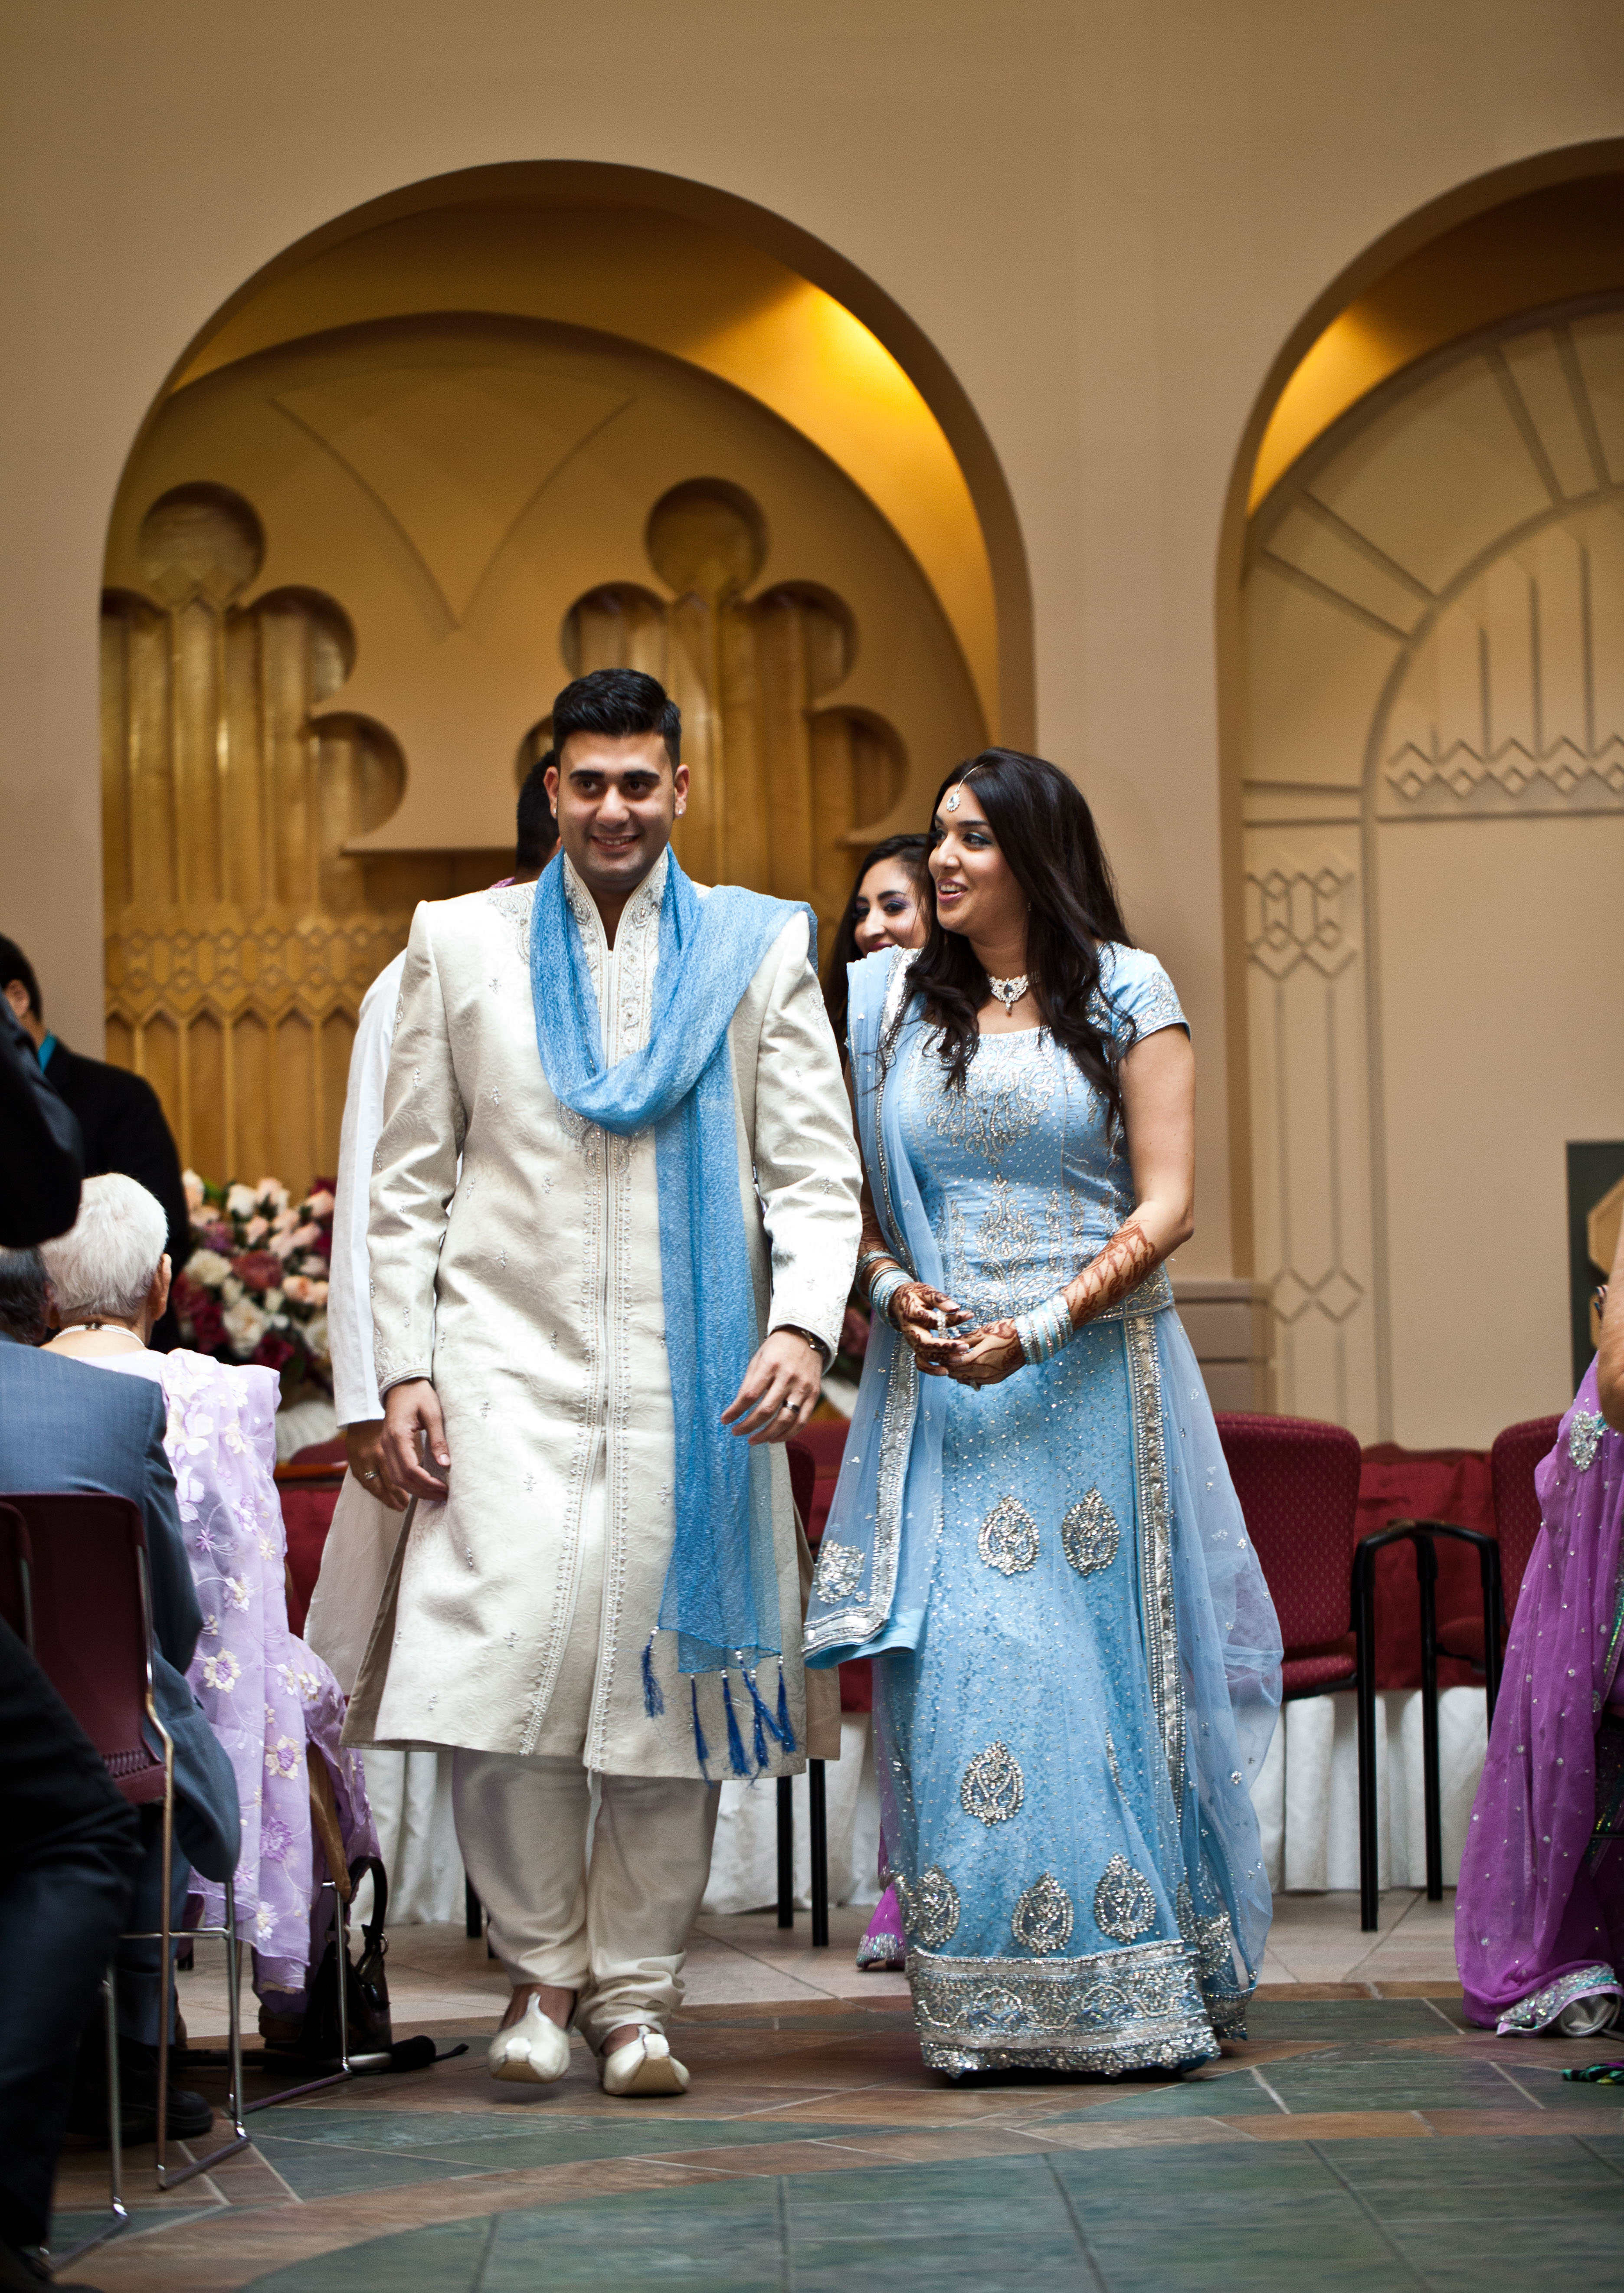 Bride and groom beaming as they walk down toward the camera after the Nikkah during a Toronto Ismaili Muslim wedding